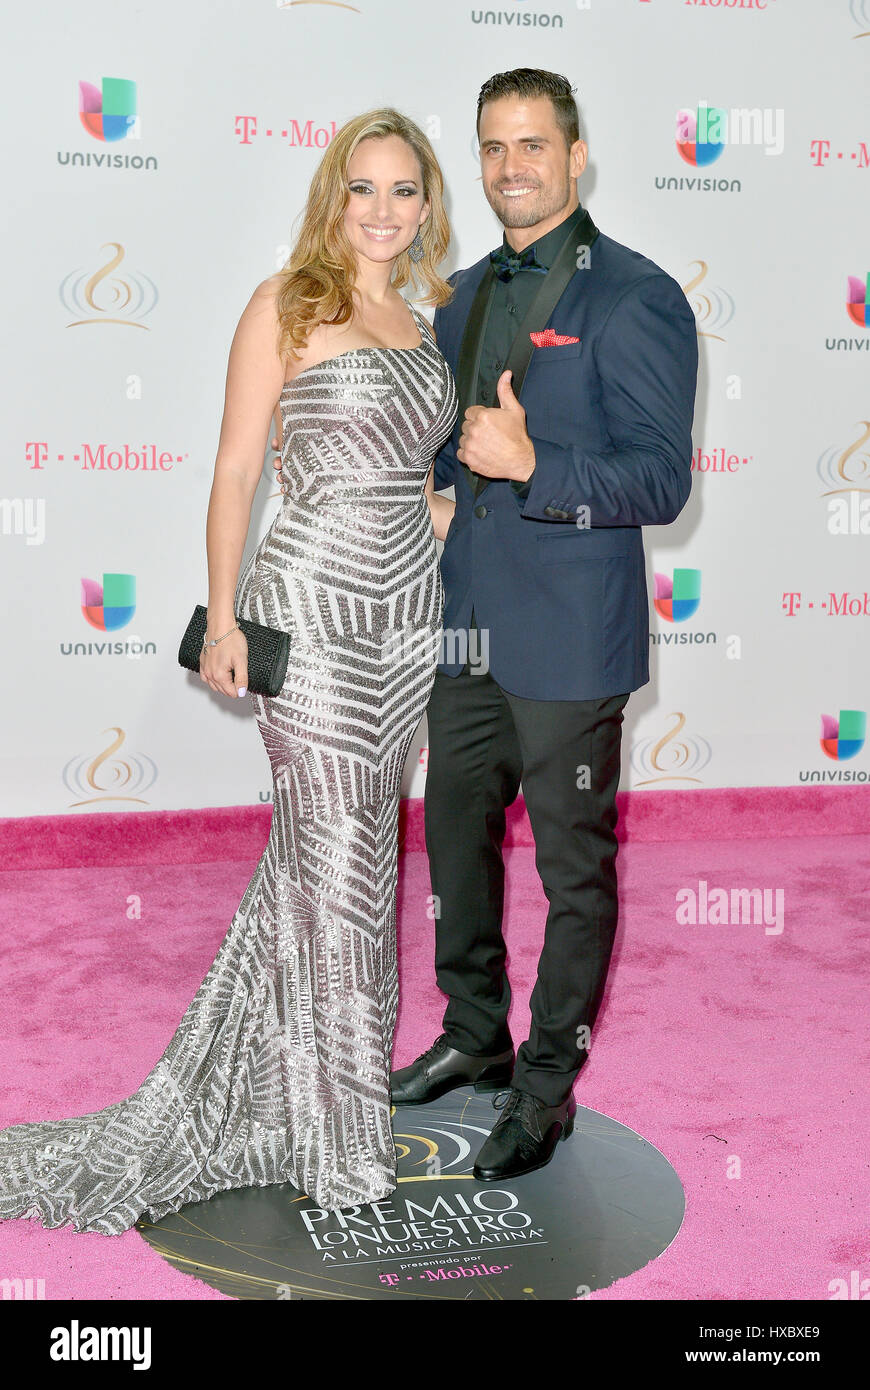 Barbara Estevez And Pedro Moreno Attending Univision S